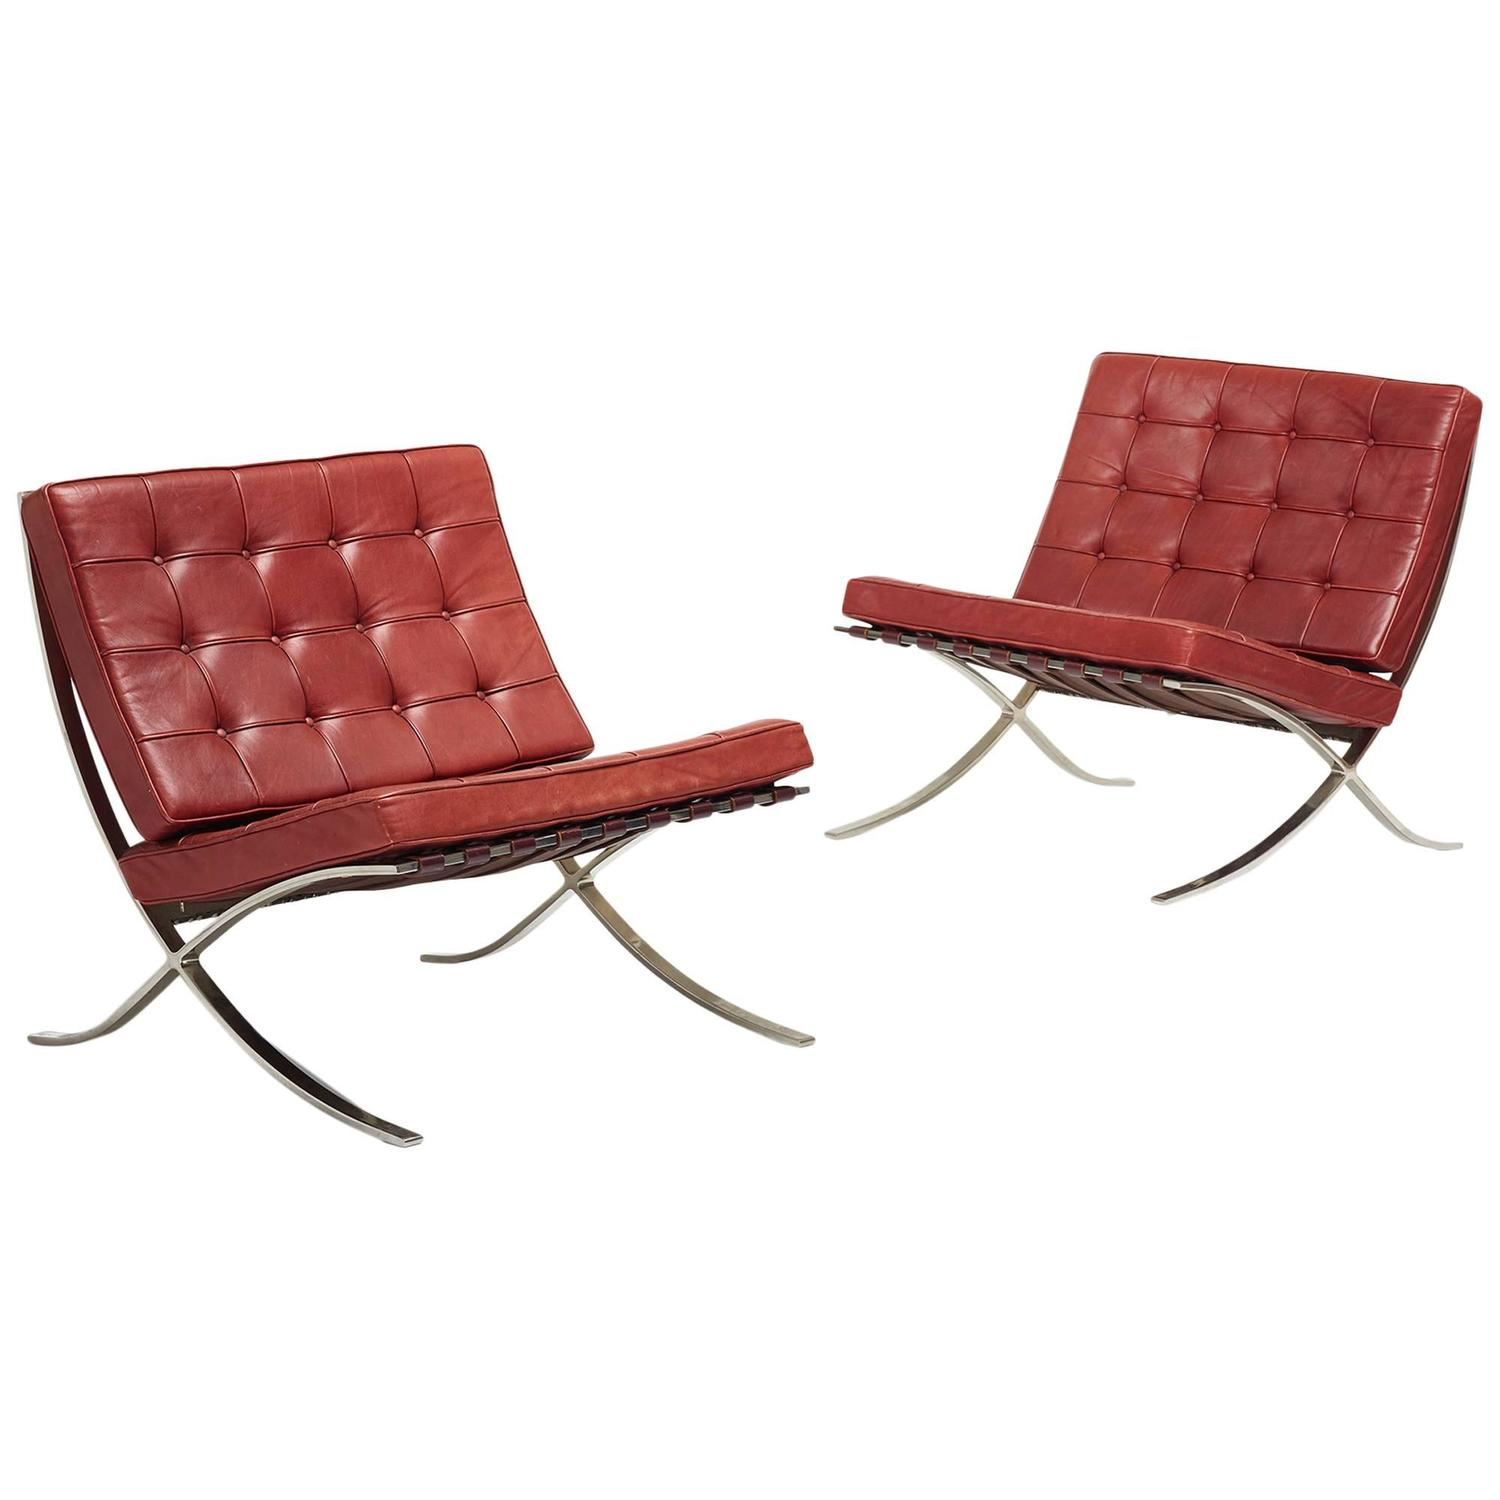 barcelona chairs for sale posture promoting chair pair of by ludwig mies van der rohe